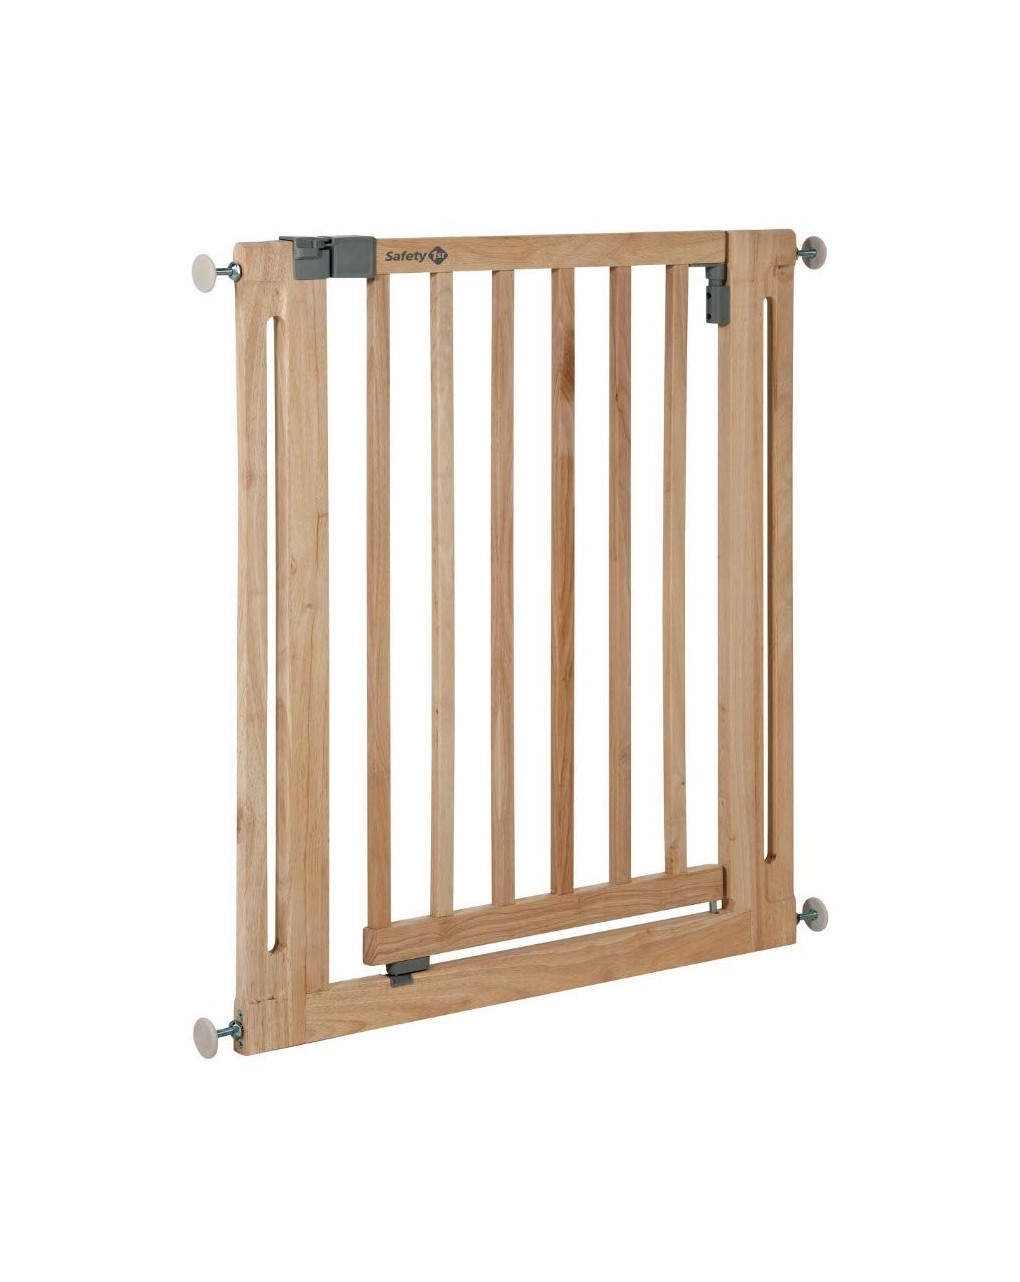 Cancelletto easy close wood - Safety 1st